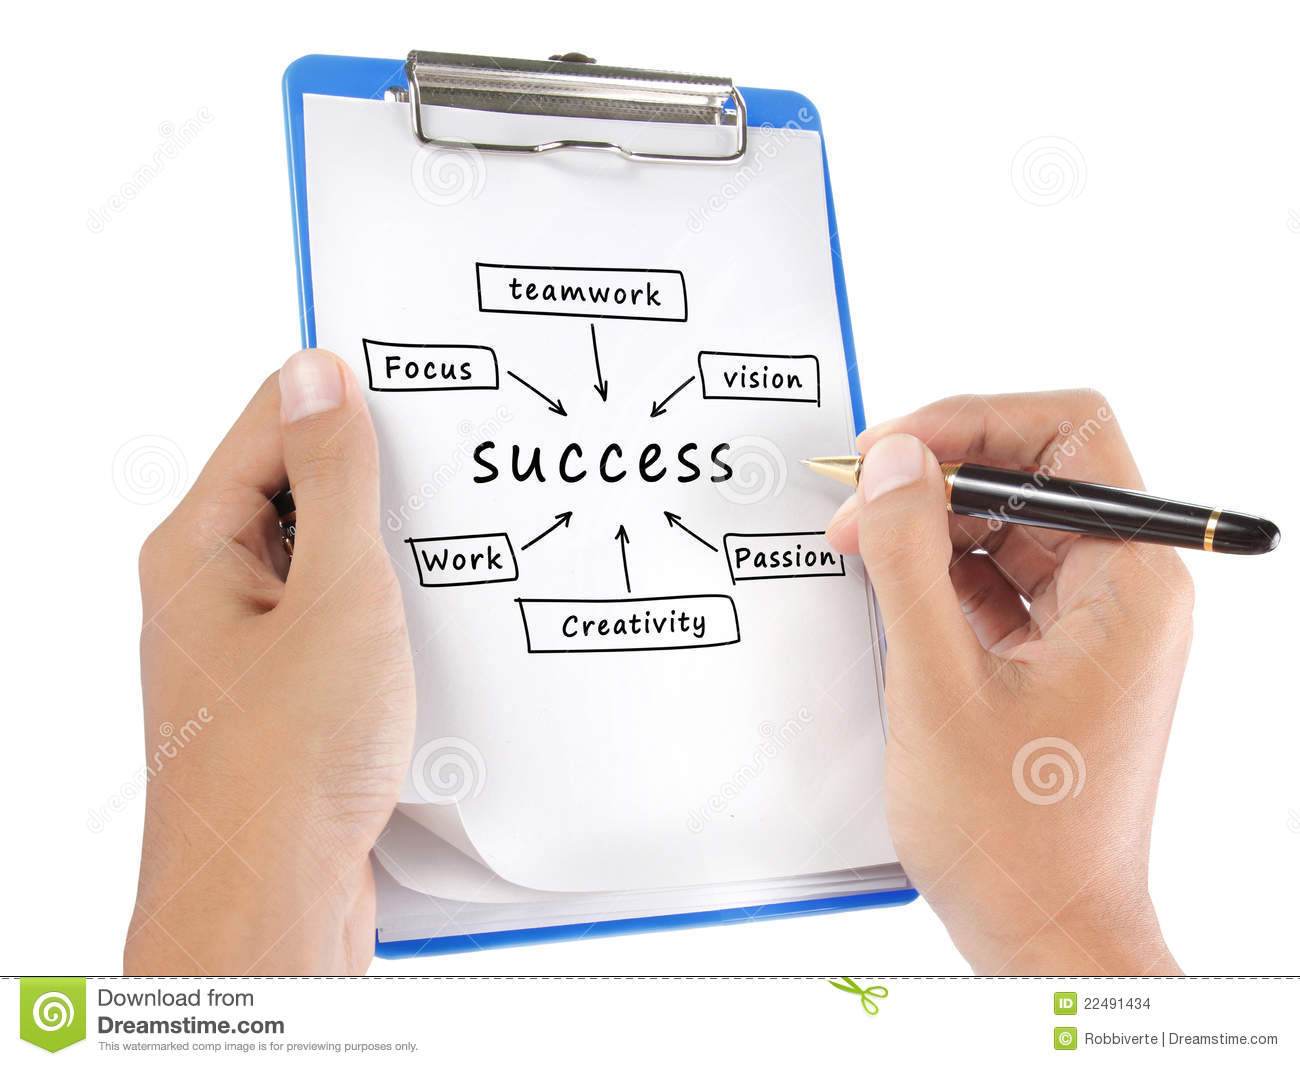 in addition Stock Photo Motivation Business Hand Drawing Pencil Sketches Goals Image61142147 in addition The Surreal And Inspiring Photos Of Flora Borsi together with Monitor Tensorboard as well Orbr jsp. on conceptual graph